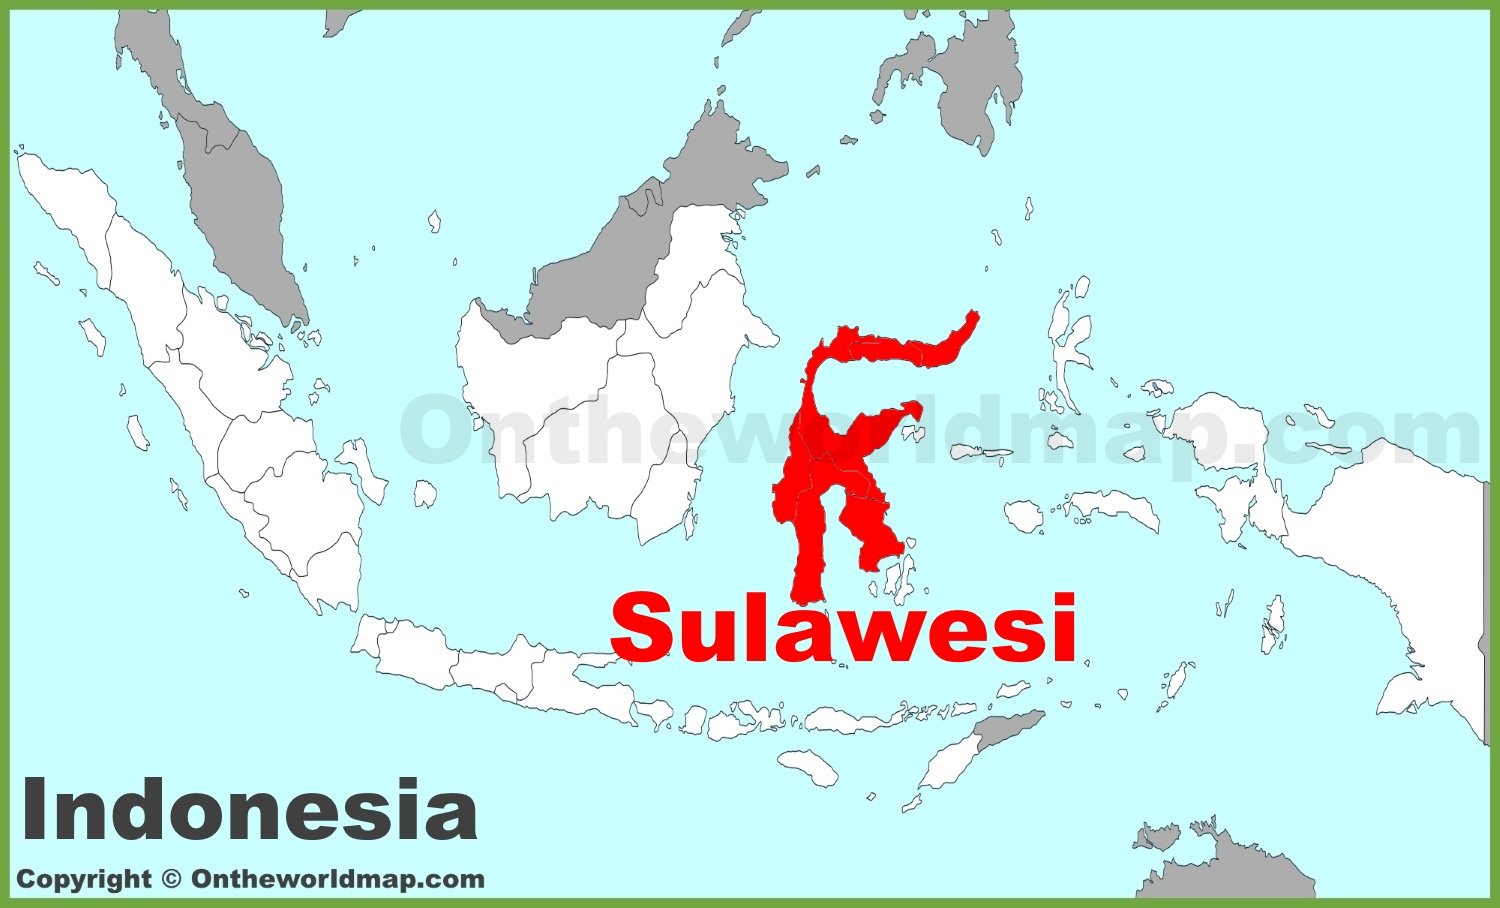 Sulawesi location on the Indonesia map on taiwan on map, cuba on map, brunei on map, nigeria on map, laos on map, kapuas river on map, guam on map, israel on map, iran on map, banda sea on map, mongolia on map, malaysia on map, bali on map, france on map, morocco map, vietnam on map, singapore on map, yellow river on map, korea on map, africa on map,